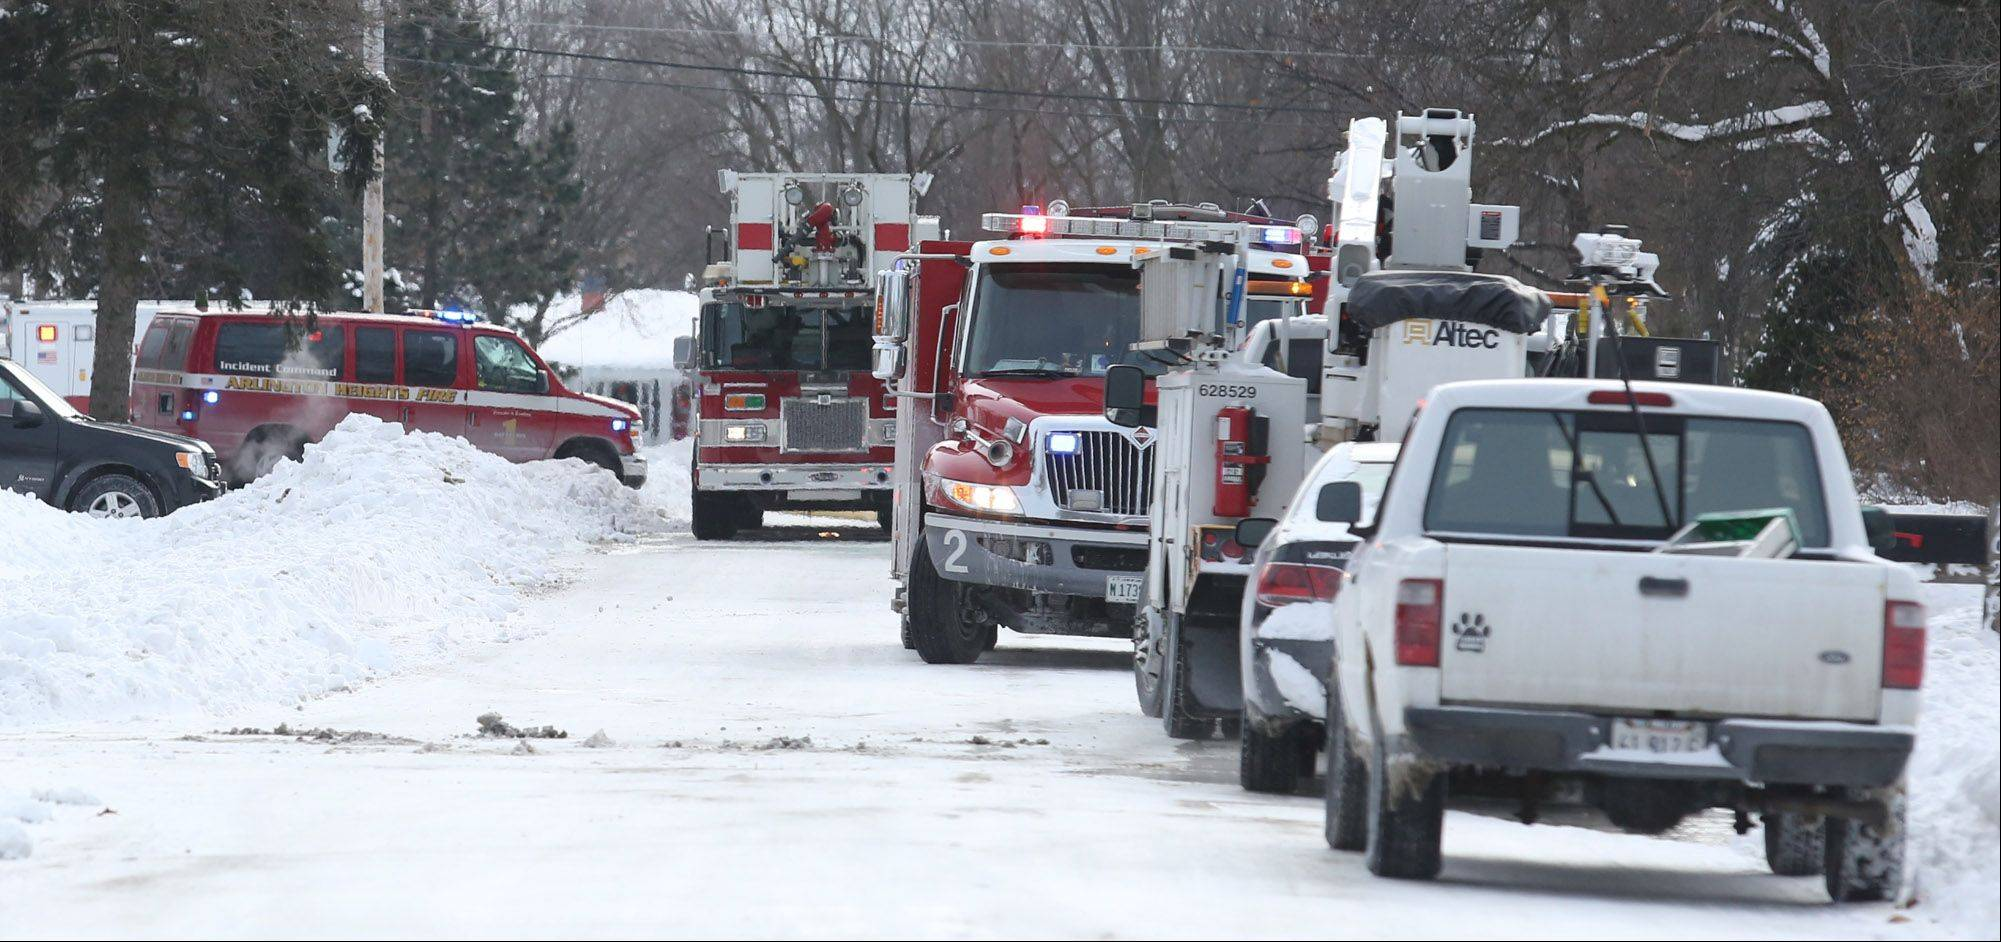 Fire department vehicles from Arlington Heights and other local agencies were on scene Tuesday afternoon during a house fire on the 1600 block of Yale Avenue in Arlington Heights.